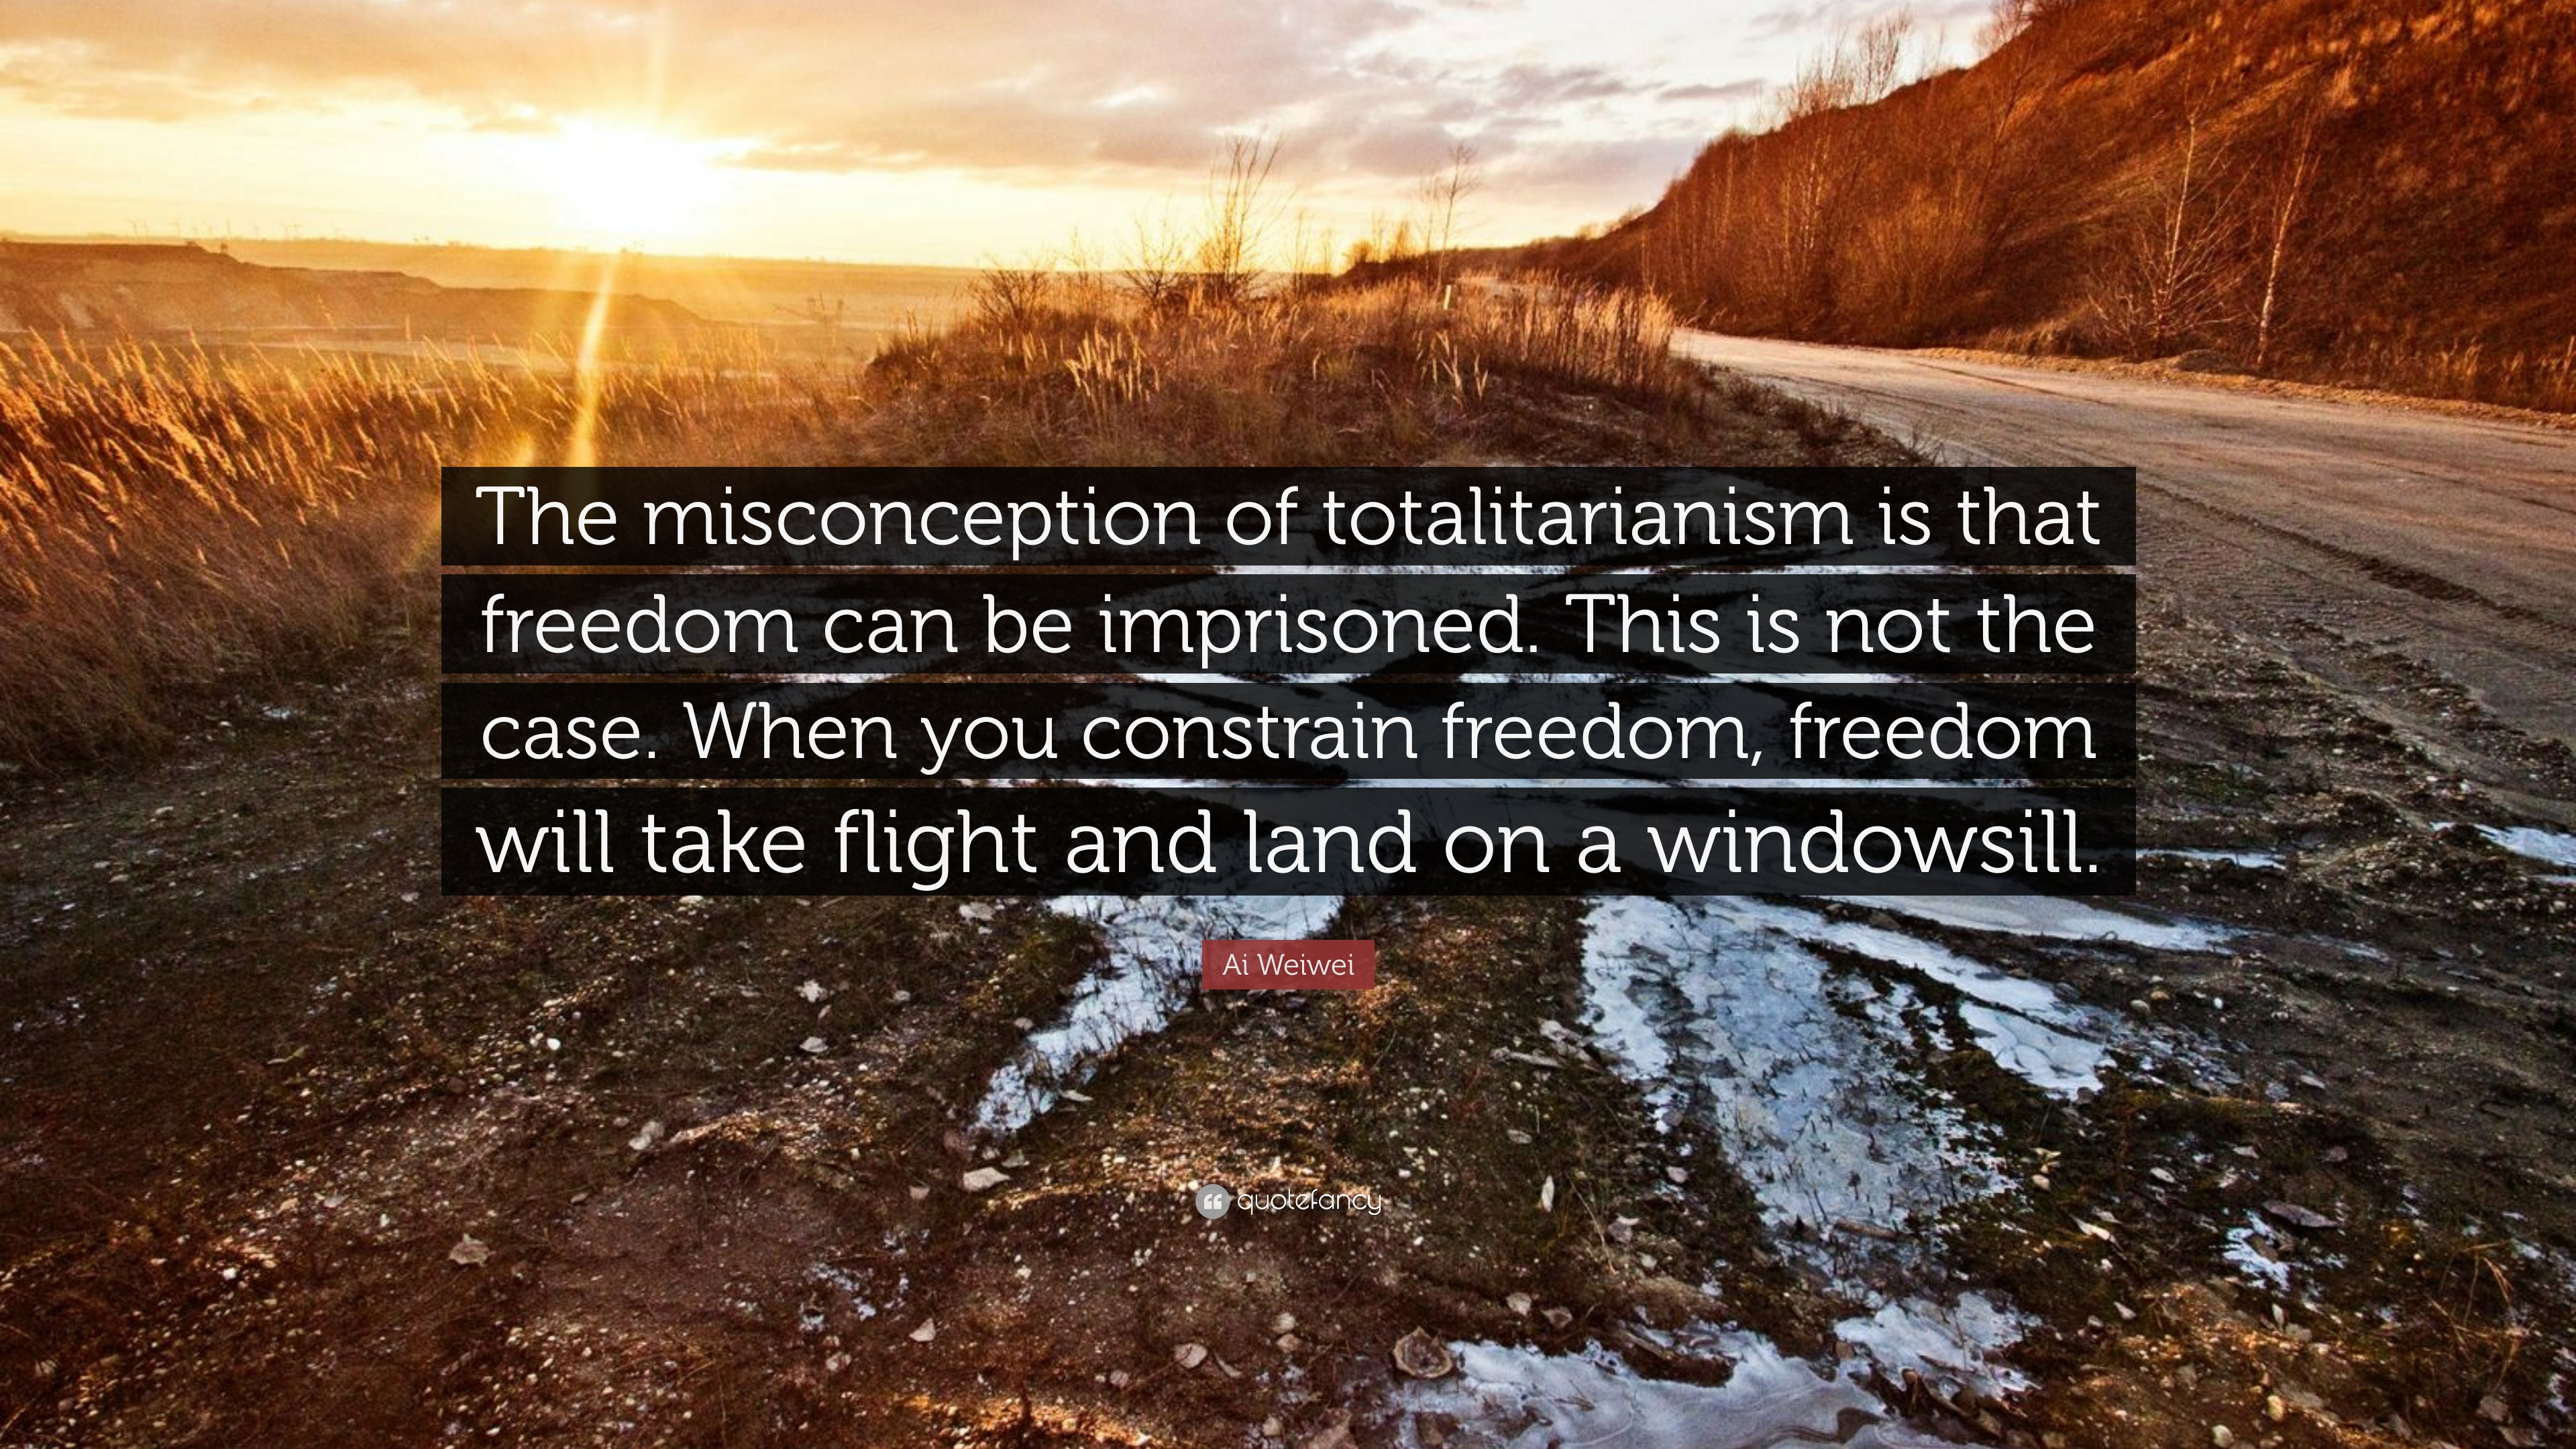 Ai Weiwei Quote: U201cThe Misconception Of Totalitarianism Is That Freedom Can  Be Imprisoned.